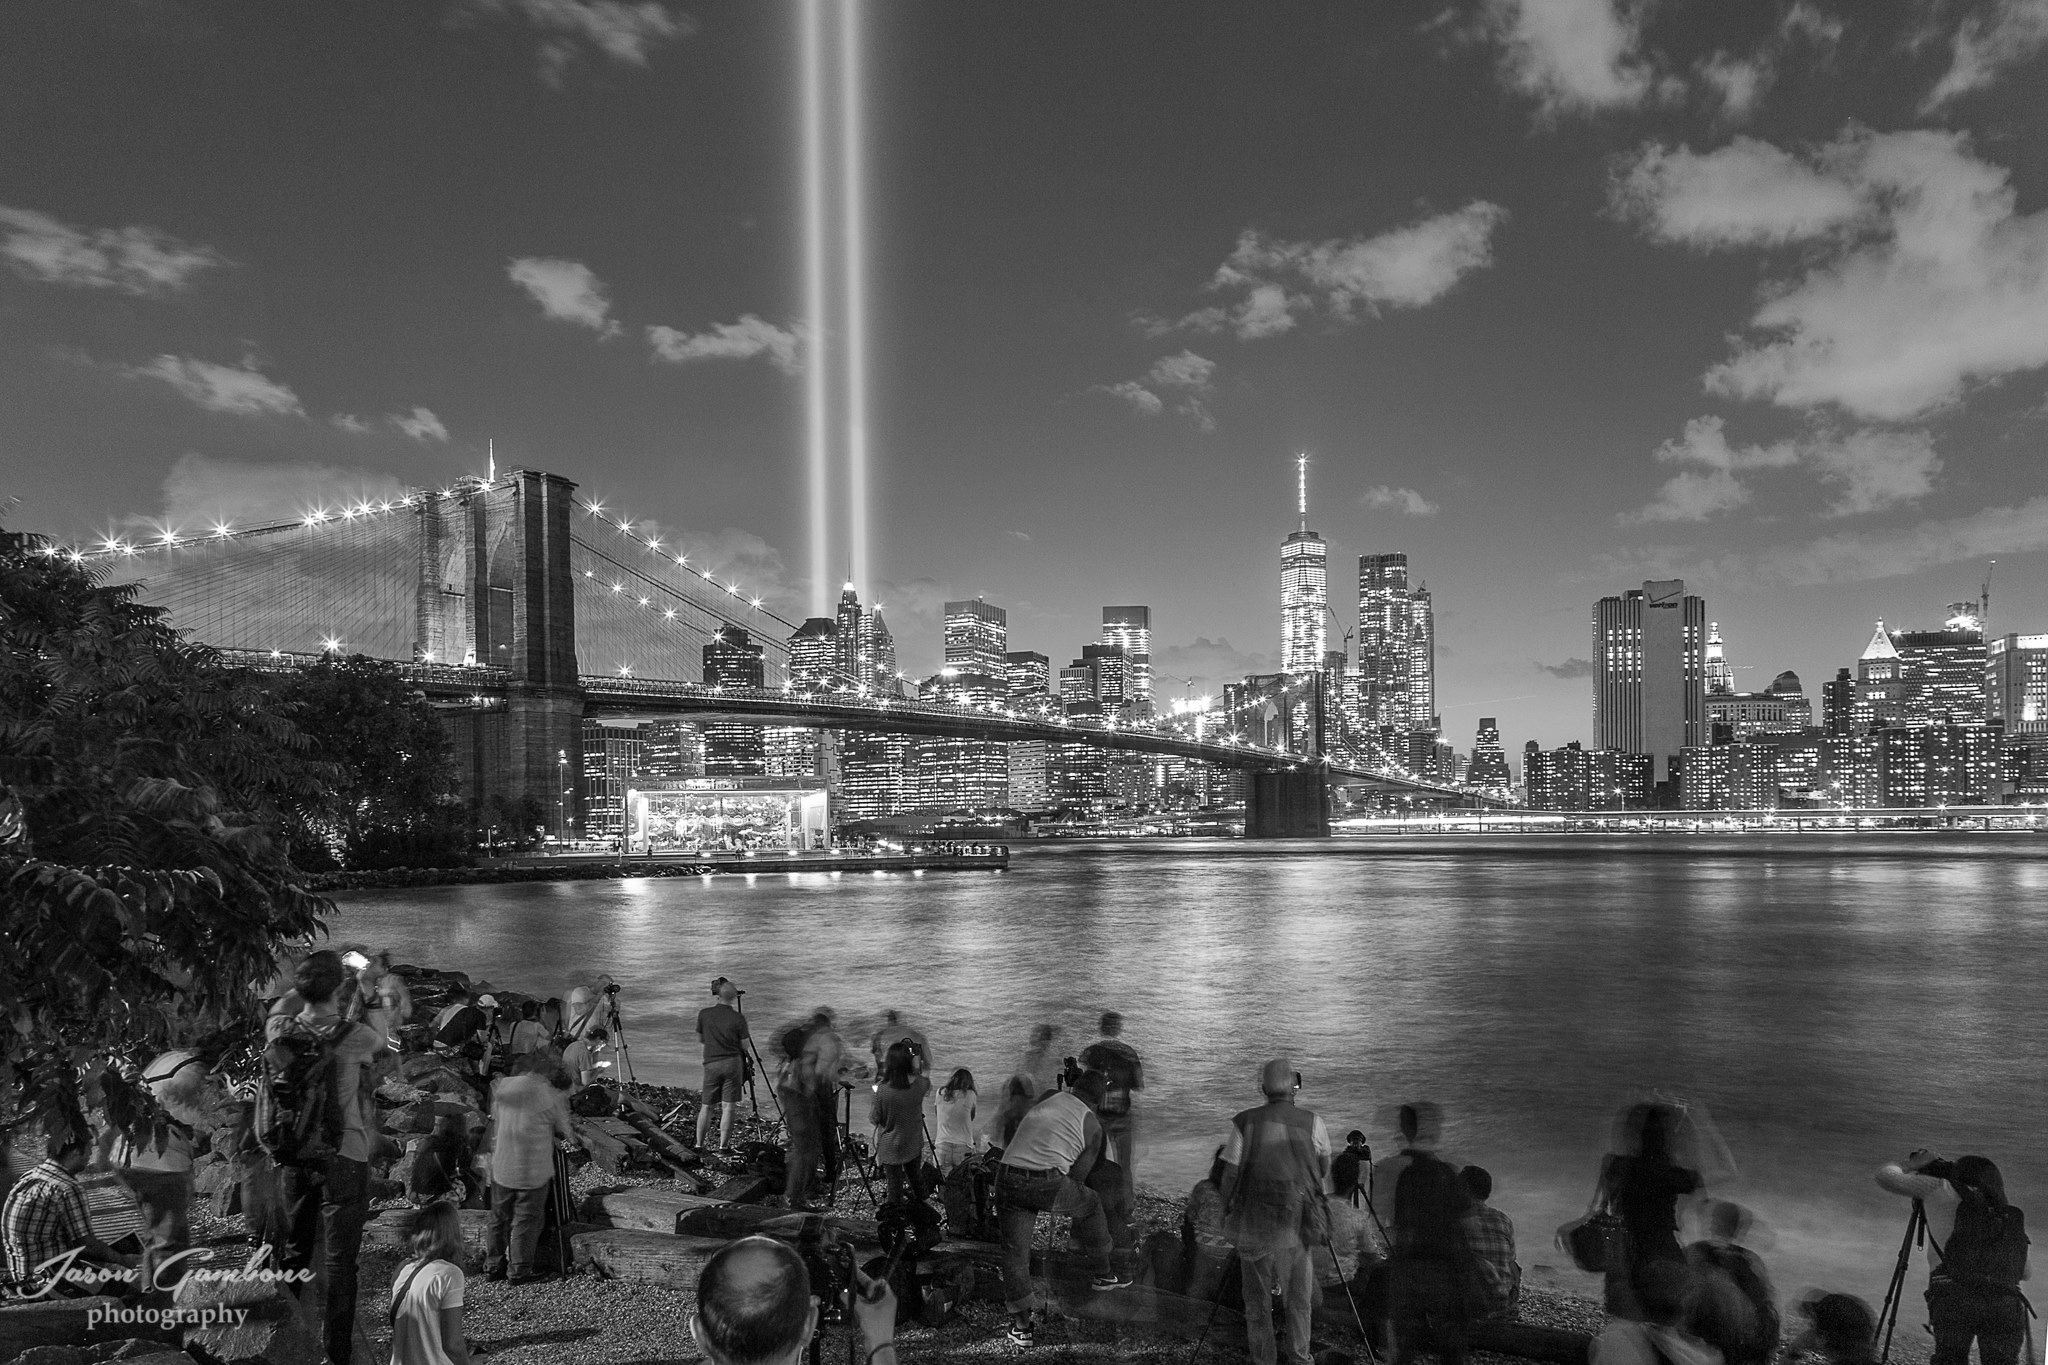 September 11th Light Memorial, New York City